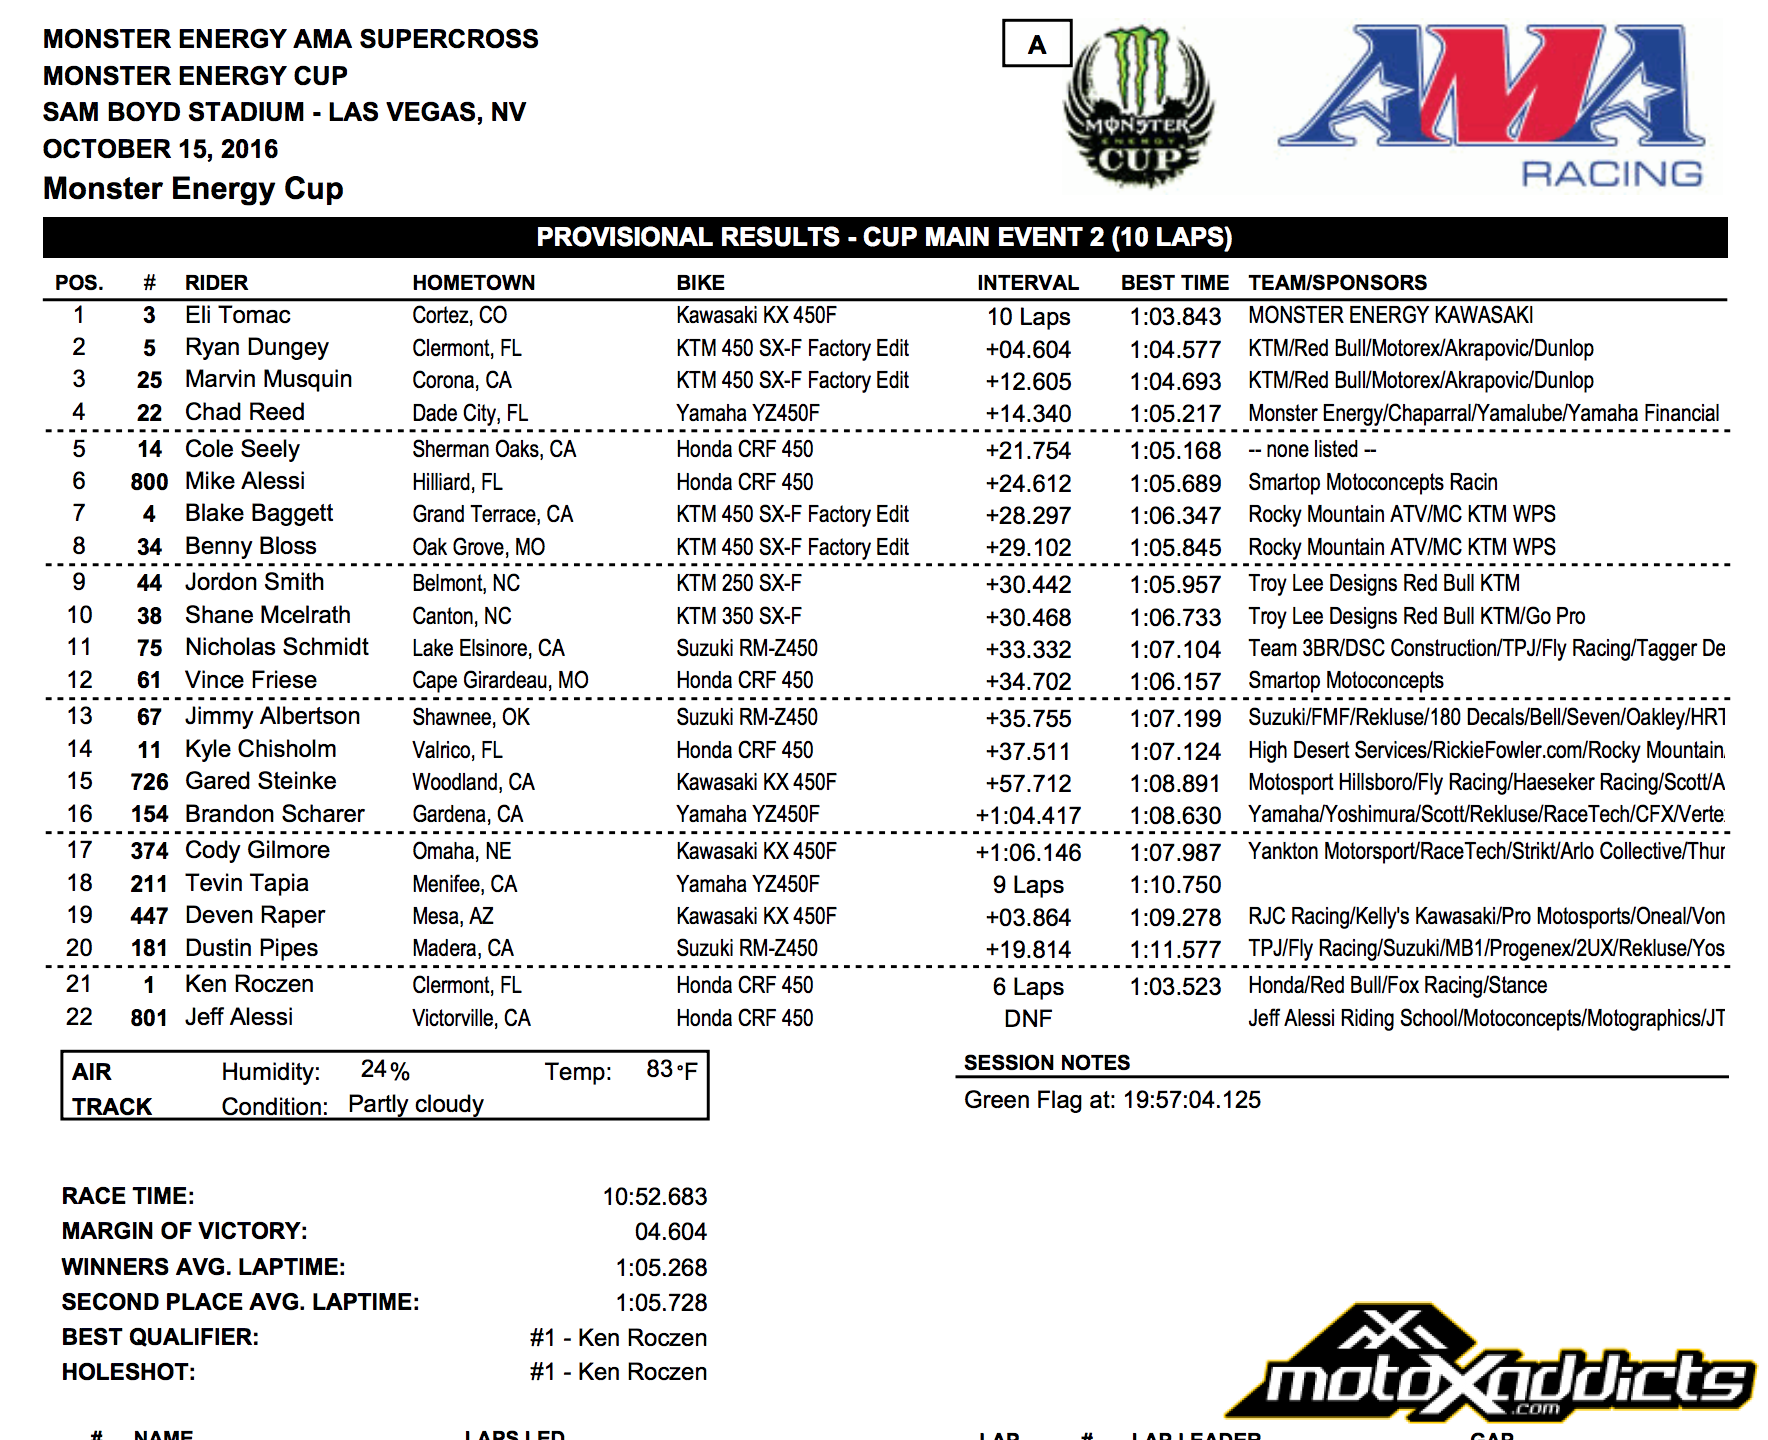 Cup Class Results - Main Event 2  - 2016 Monster Energy Cup - Click to Enlarge